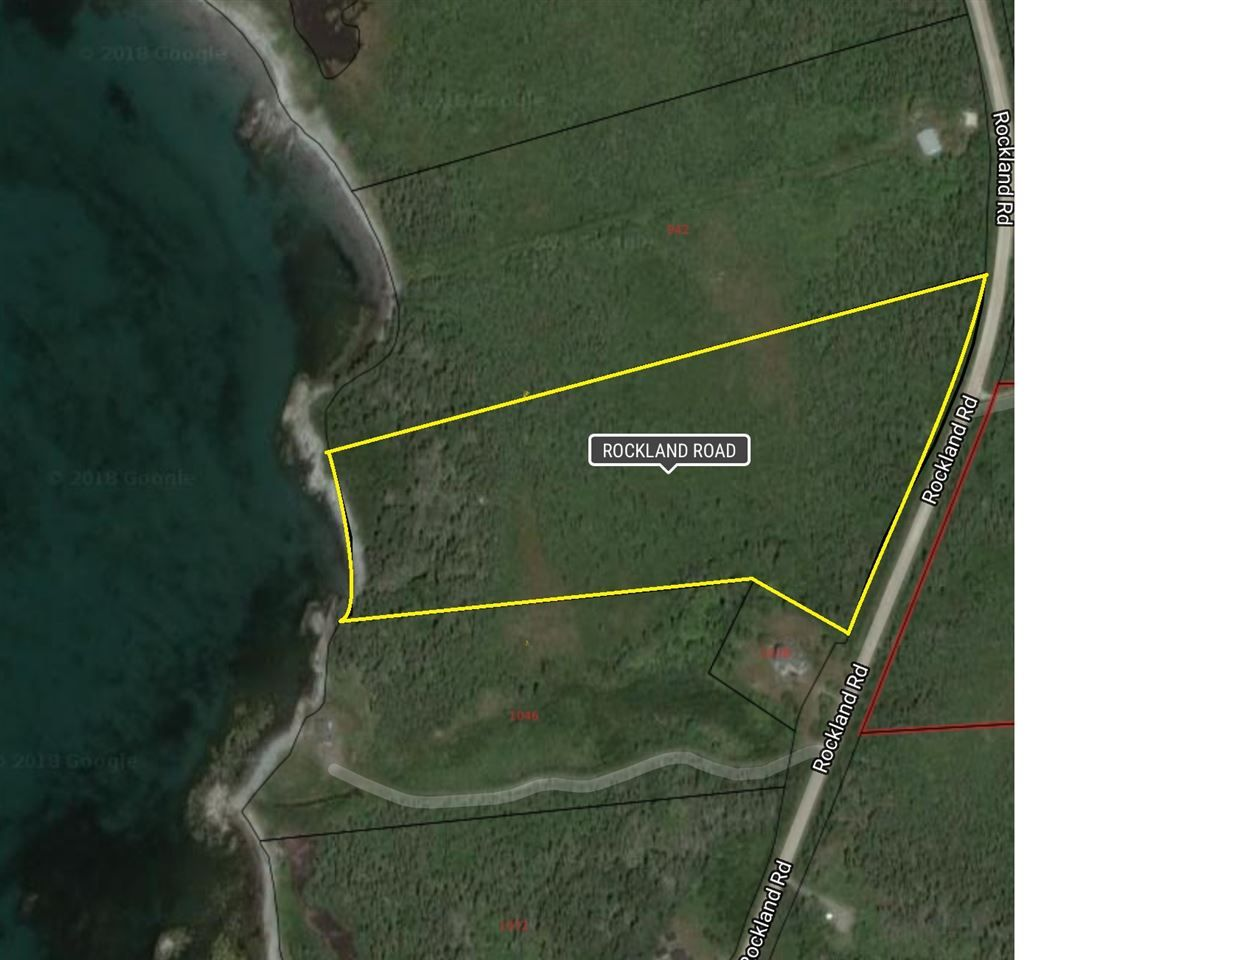 Main Photo: Lot Rockland Road in East Ragged Island: 407-Shelburne County Vacant Land for sale (South Shore)  : MLS®# 202107307